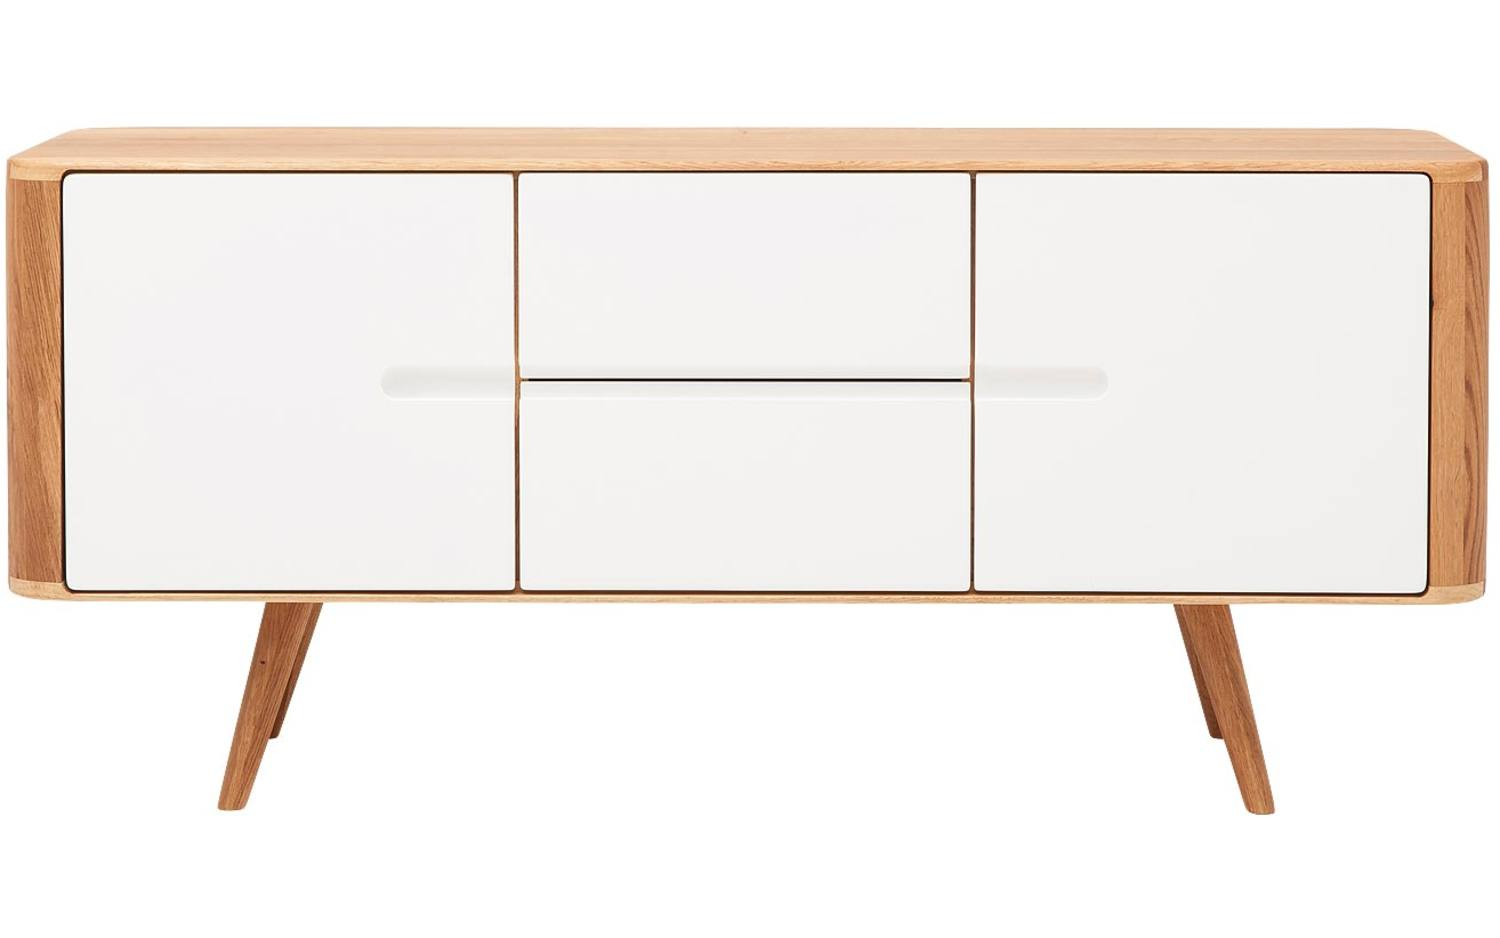 Dressoir Wit Hout Awesome Provence Dressoir Wit Hout With